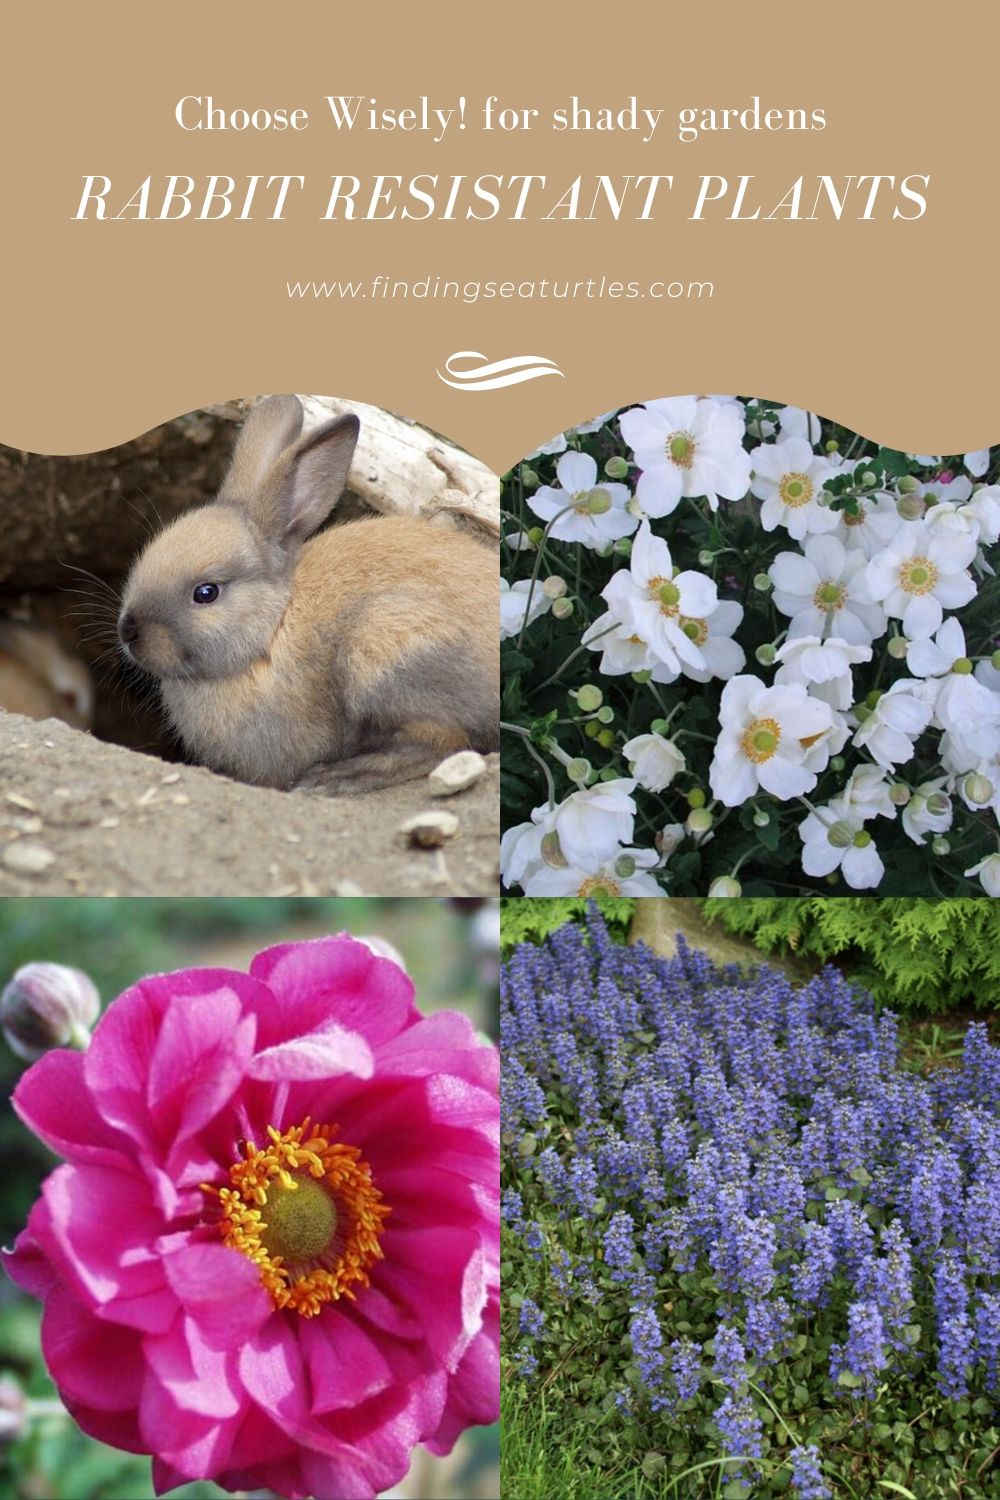 Choose Wisely for shady gardens Rabbit Resistant Plants #PollinatorPlants #RabbitResistant #PlantsResistanttoRabbits #PlantsforPollinators #Gardening #Perennials